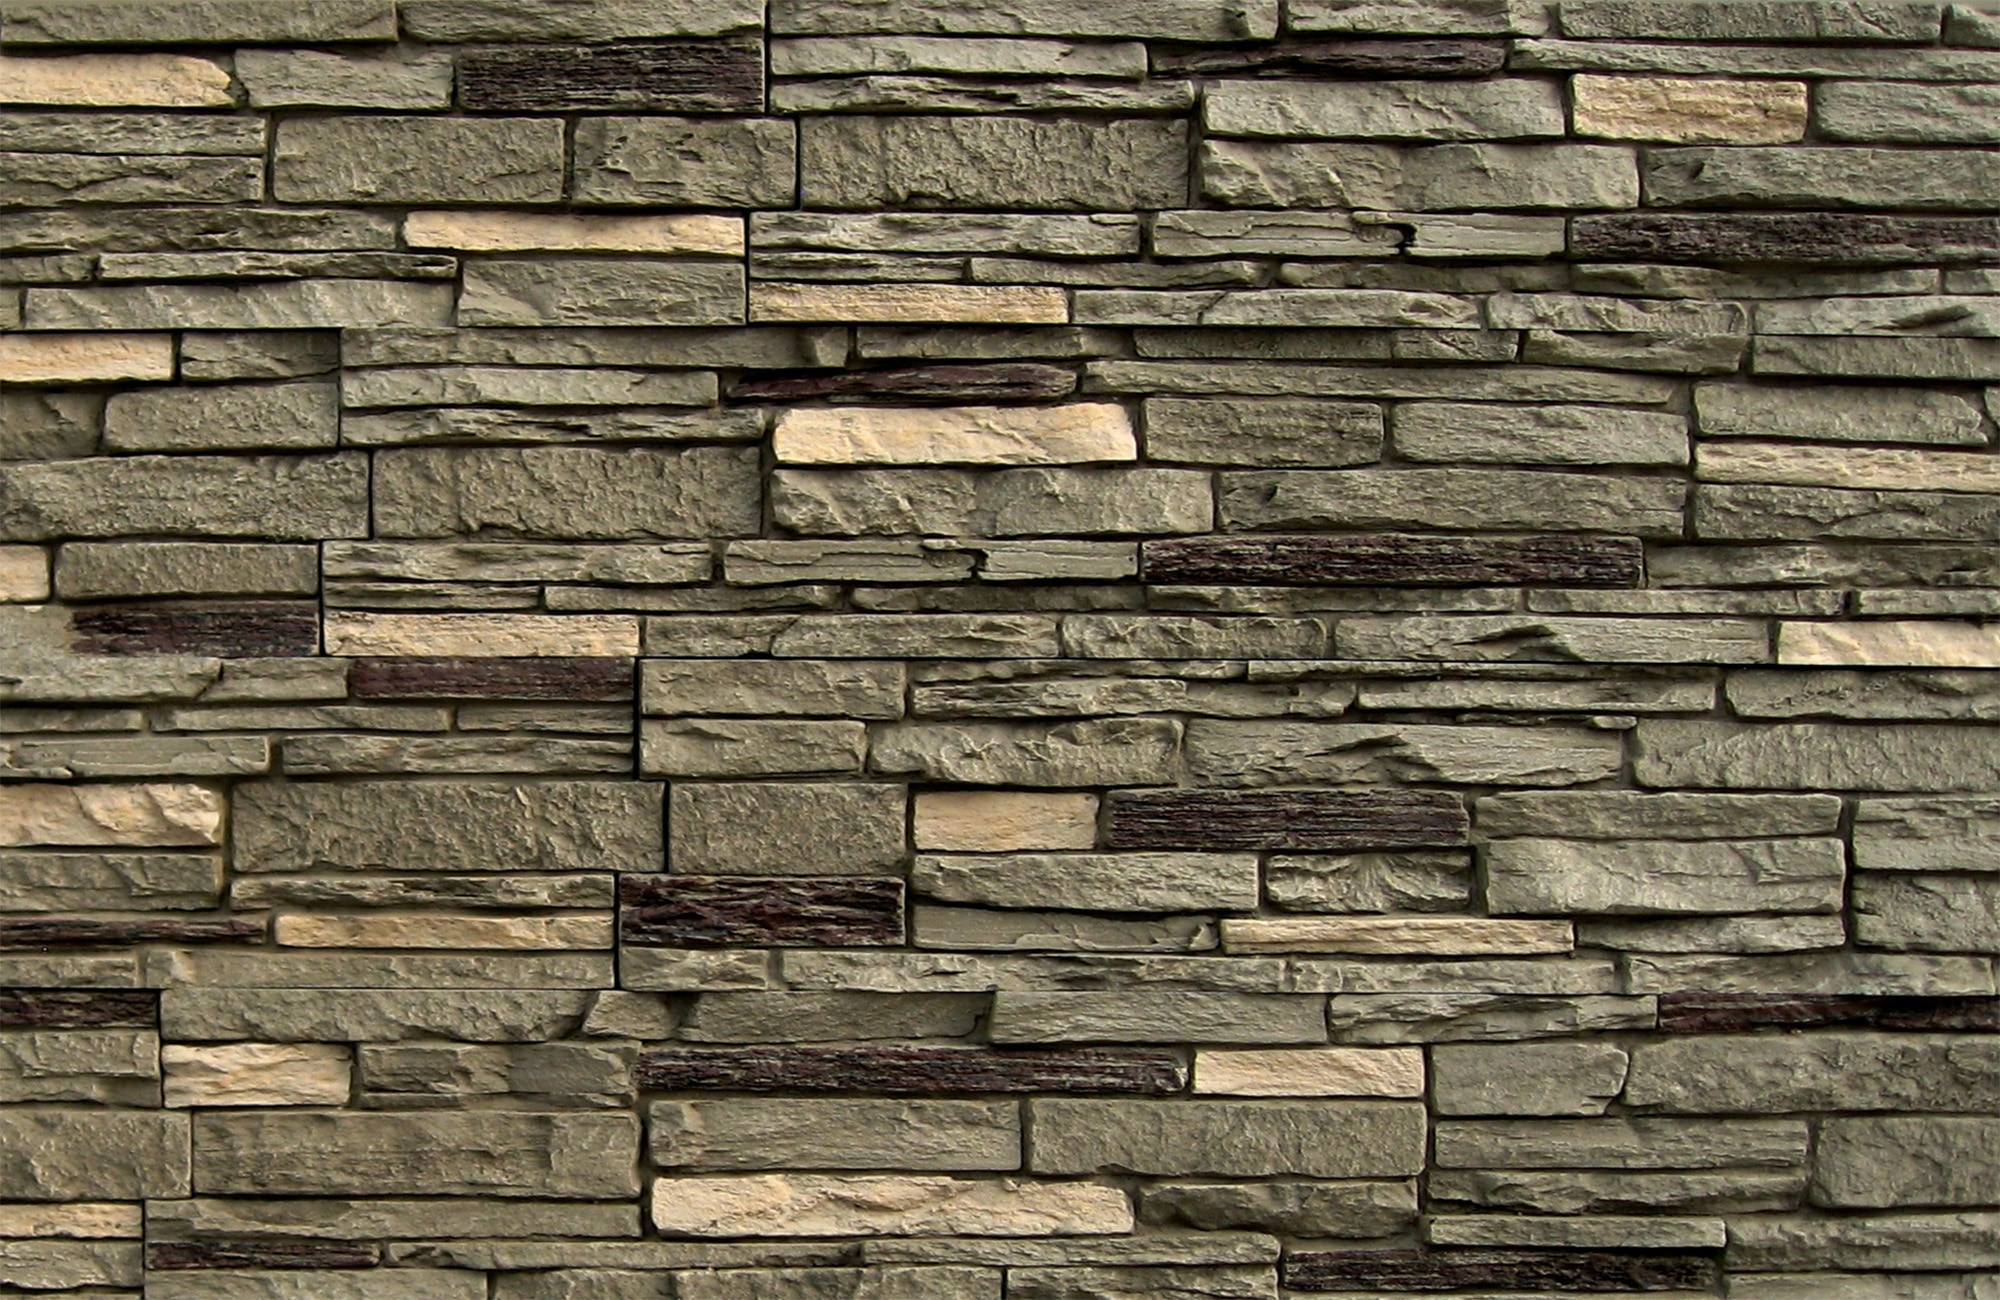 2000x1300 Brick Veneer Wallpaper Outstanding 3d Stacked Stone Wallpaper 3d Stone  Effect Wallpaper